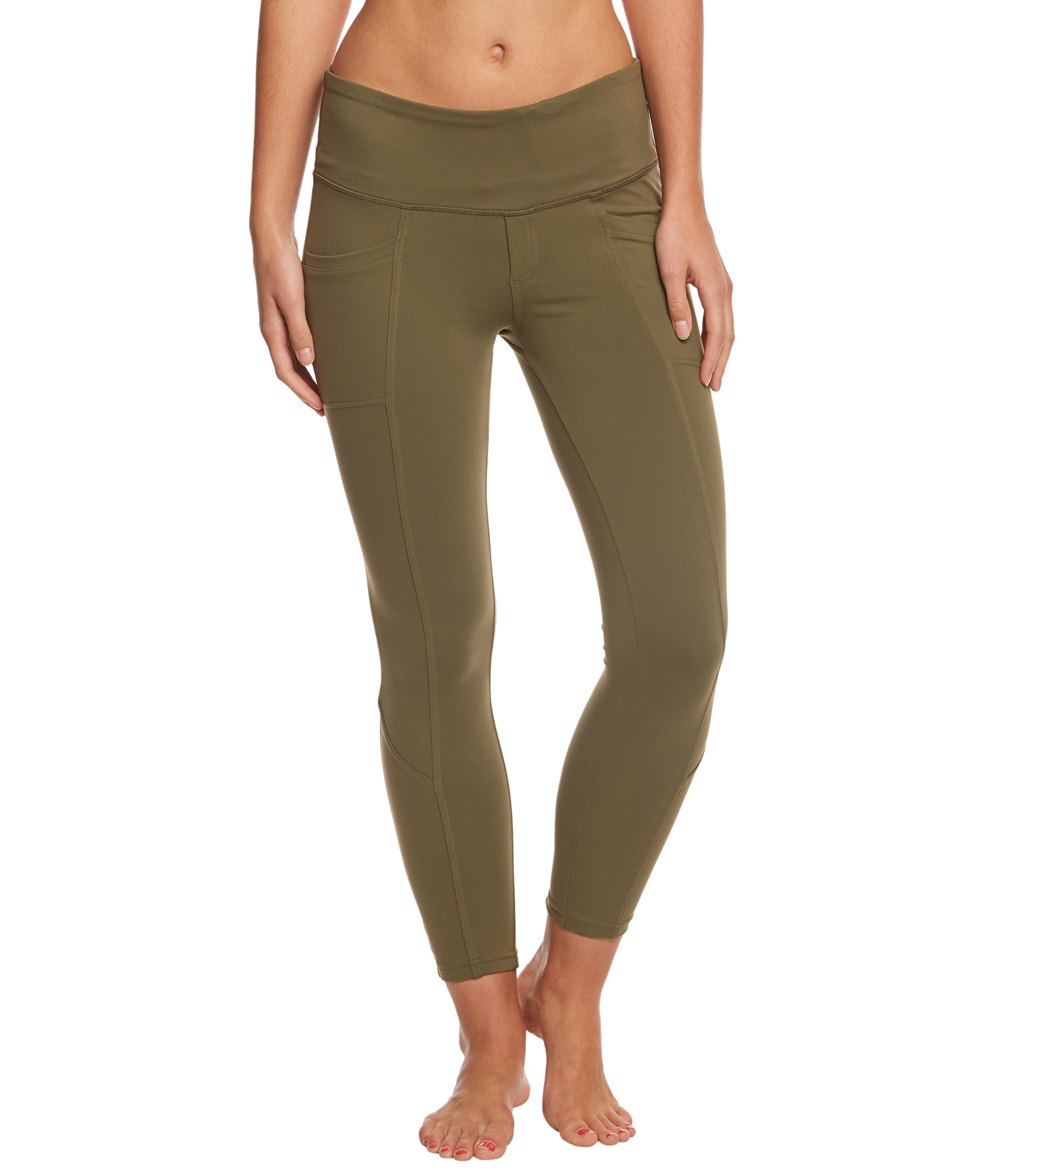 Prana Urbanite Yoga Leggings With Pockets At Yogaoutlet Com Free Shipping